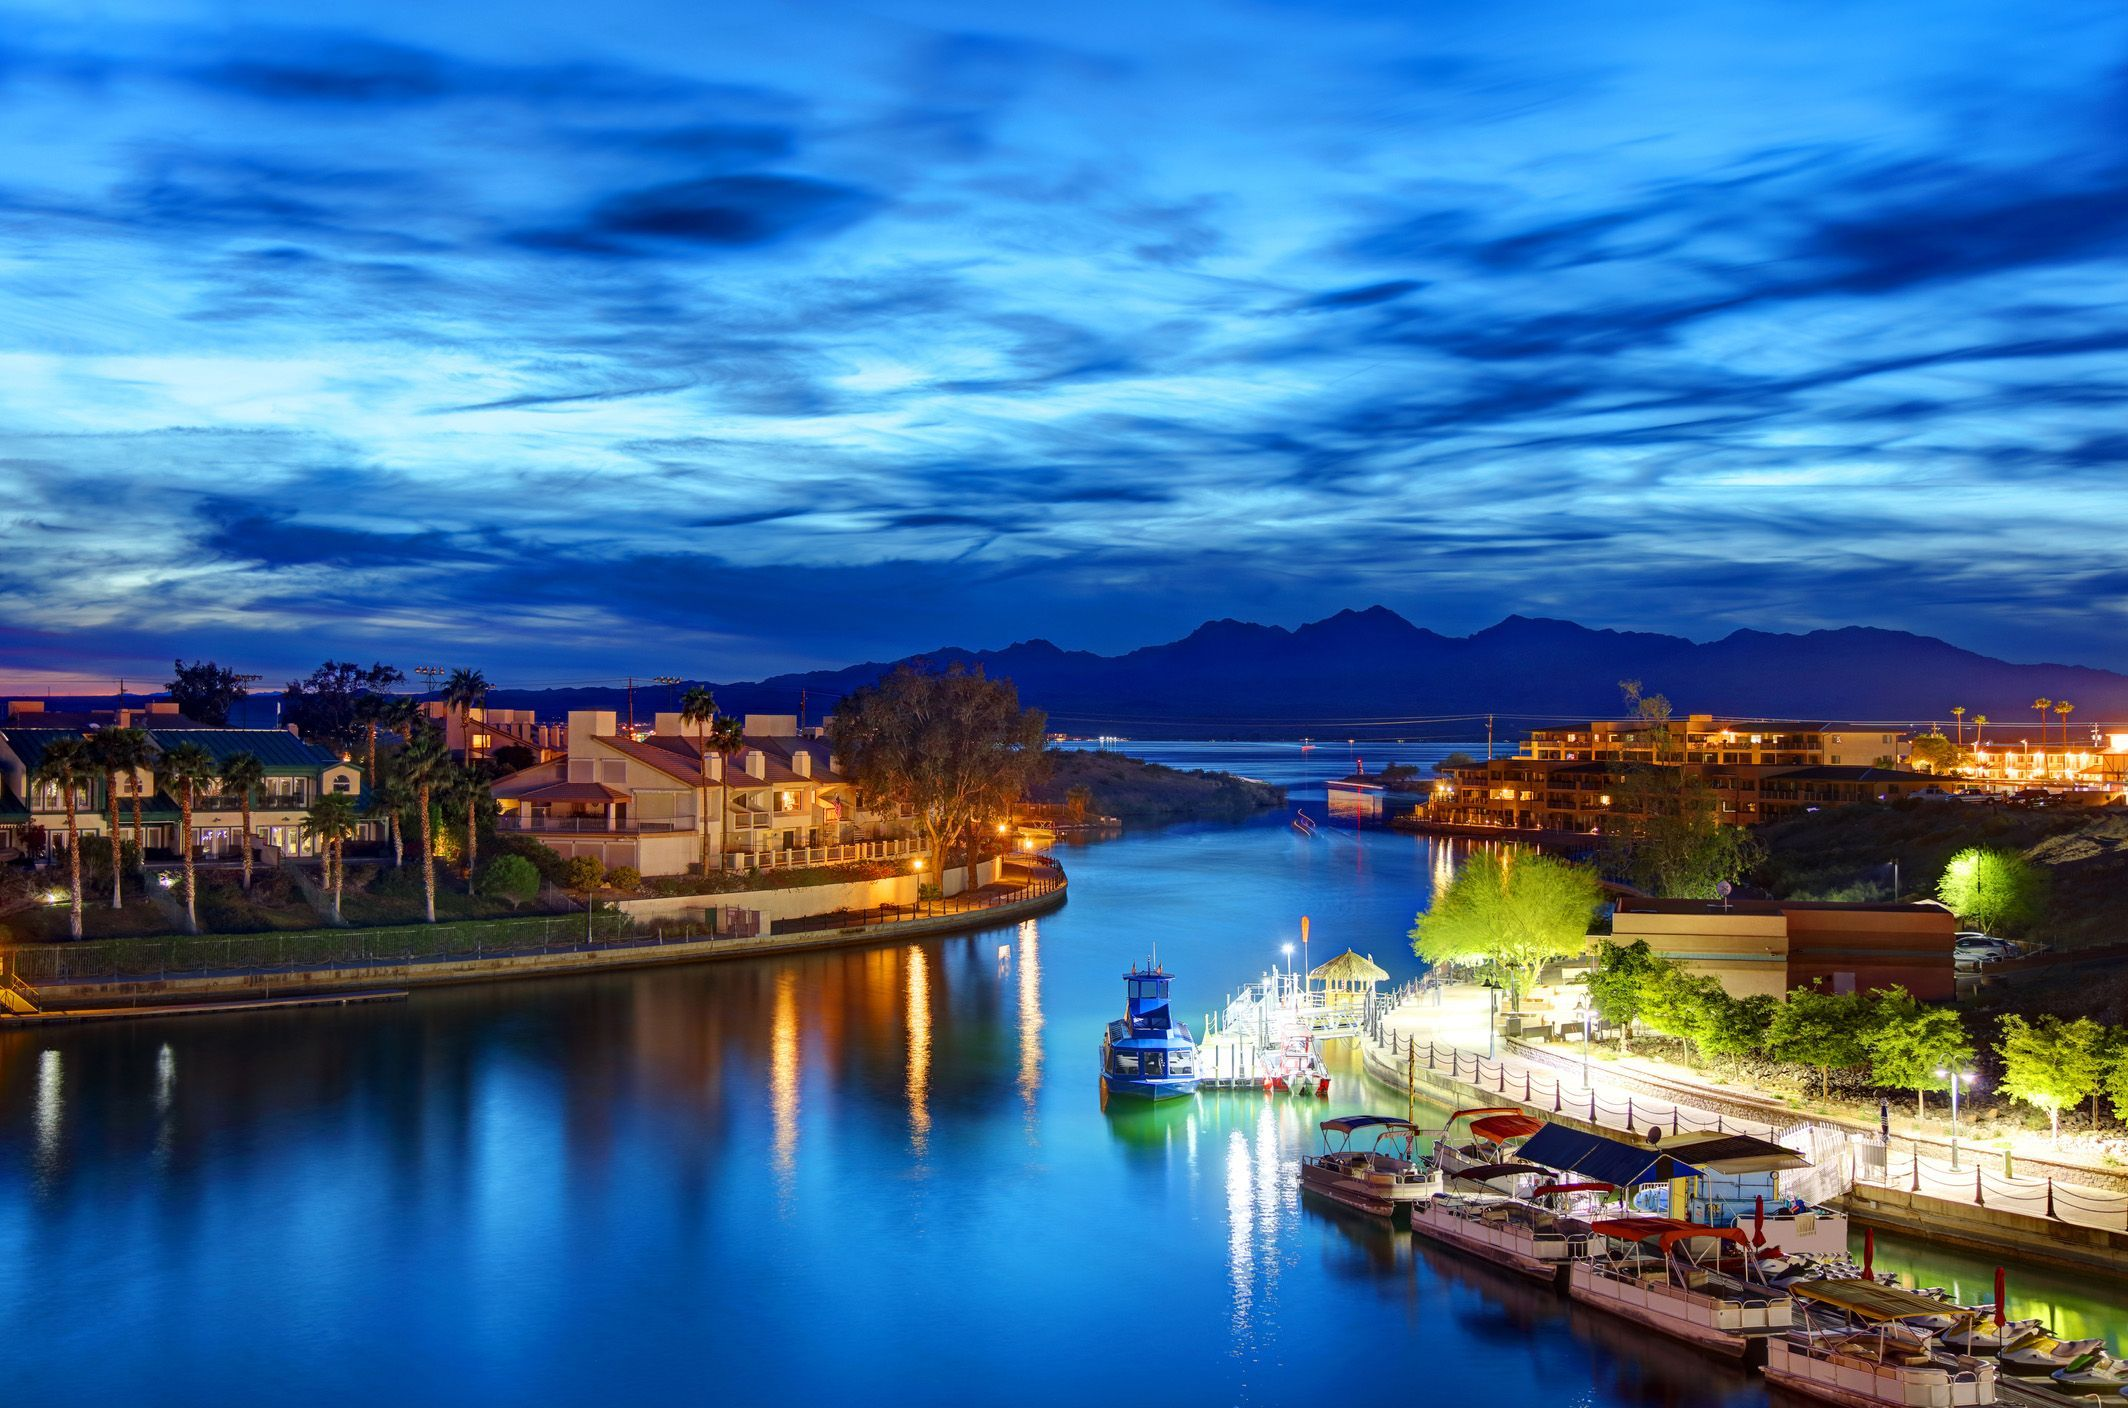 The Most Picturesque Lake Towns in the United States